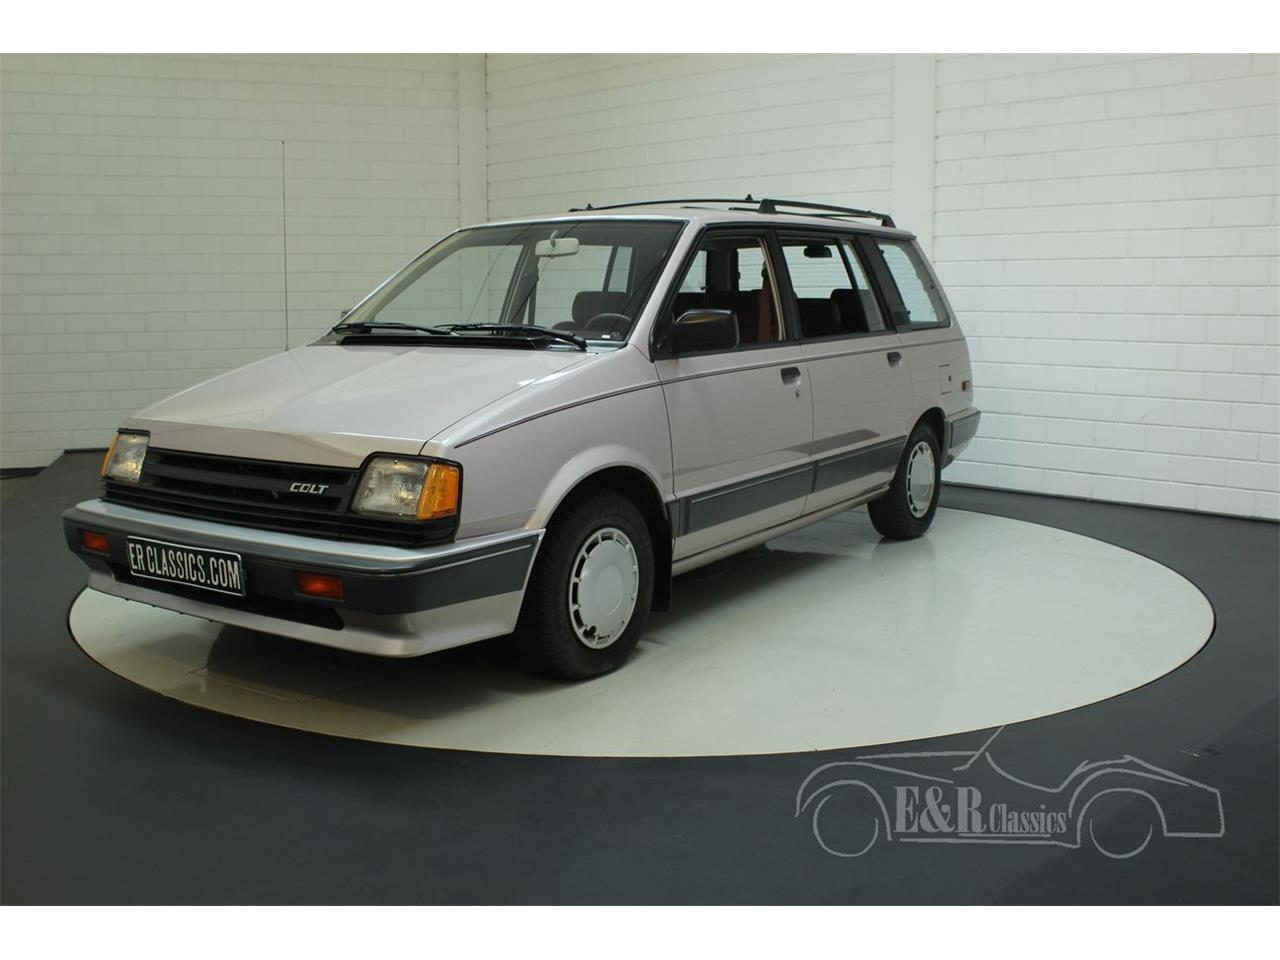 Large Picture of 1987 Dodge Colt located in [nl] Pays-Bas - PVV4